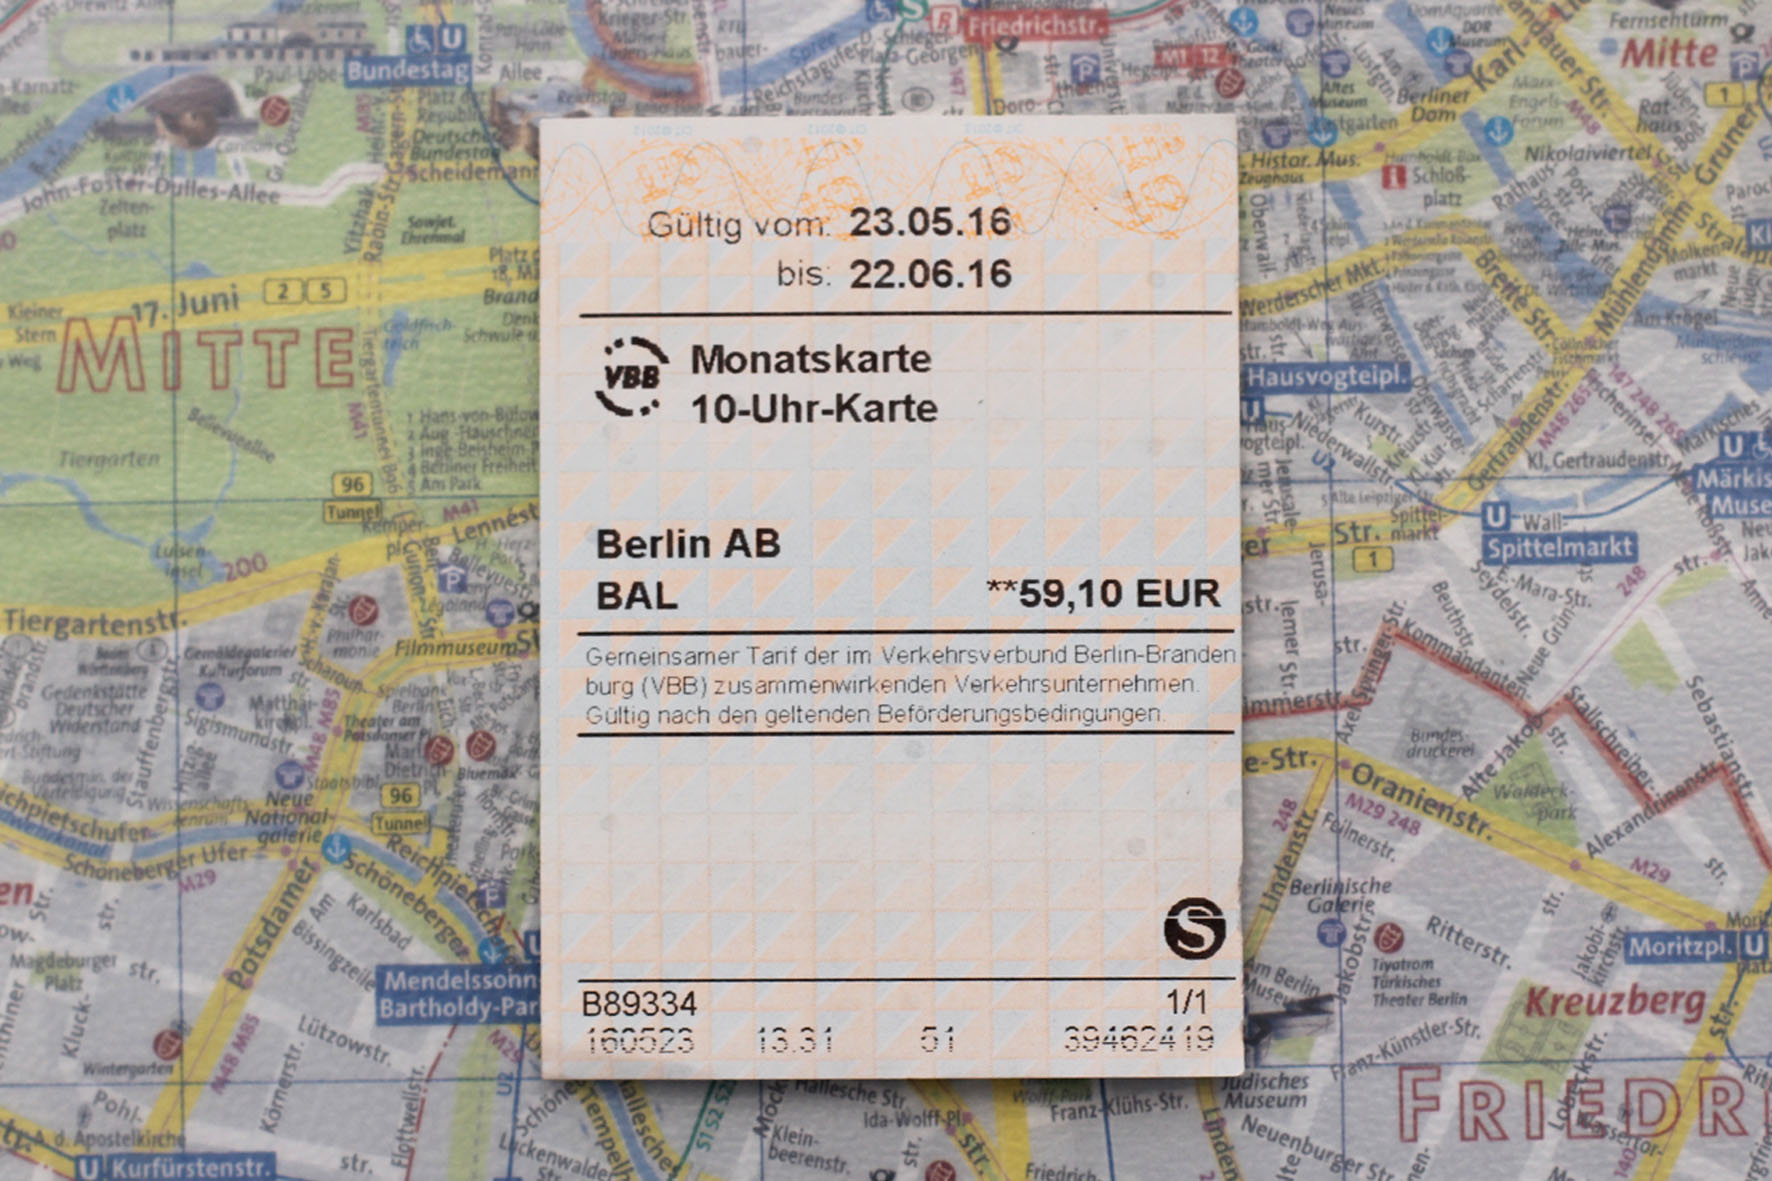 Getting Caught Without a Valid Ticket on Berlin Public